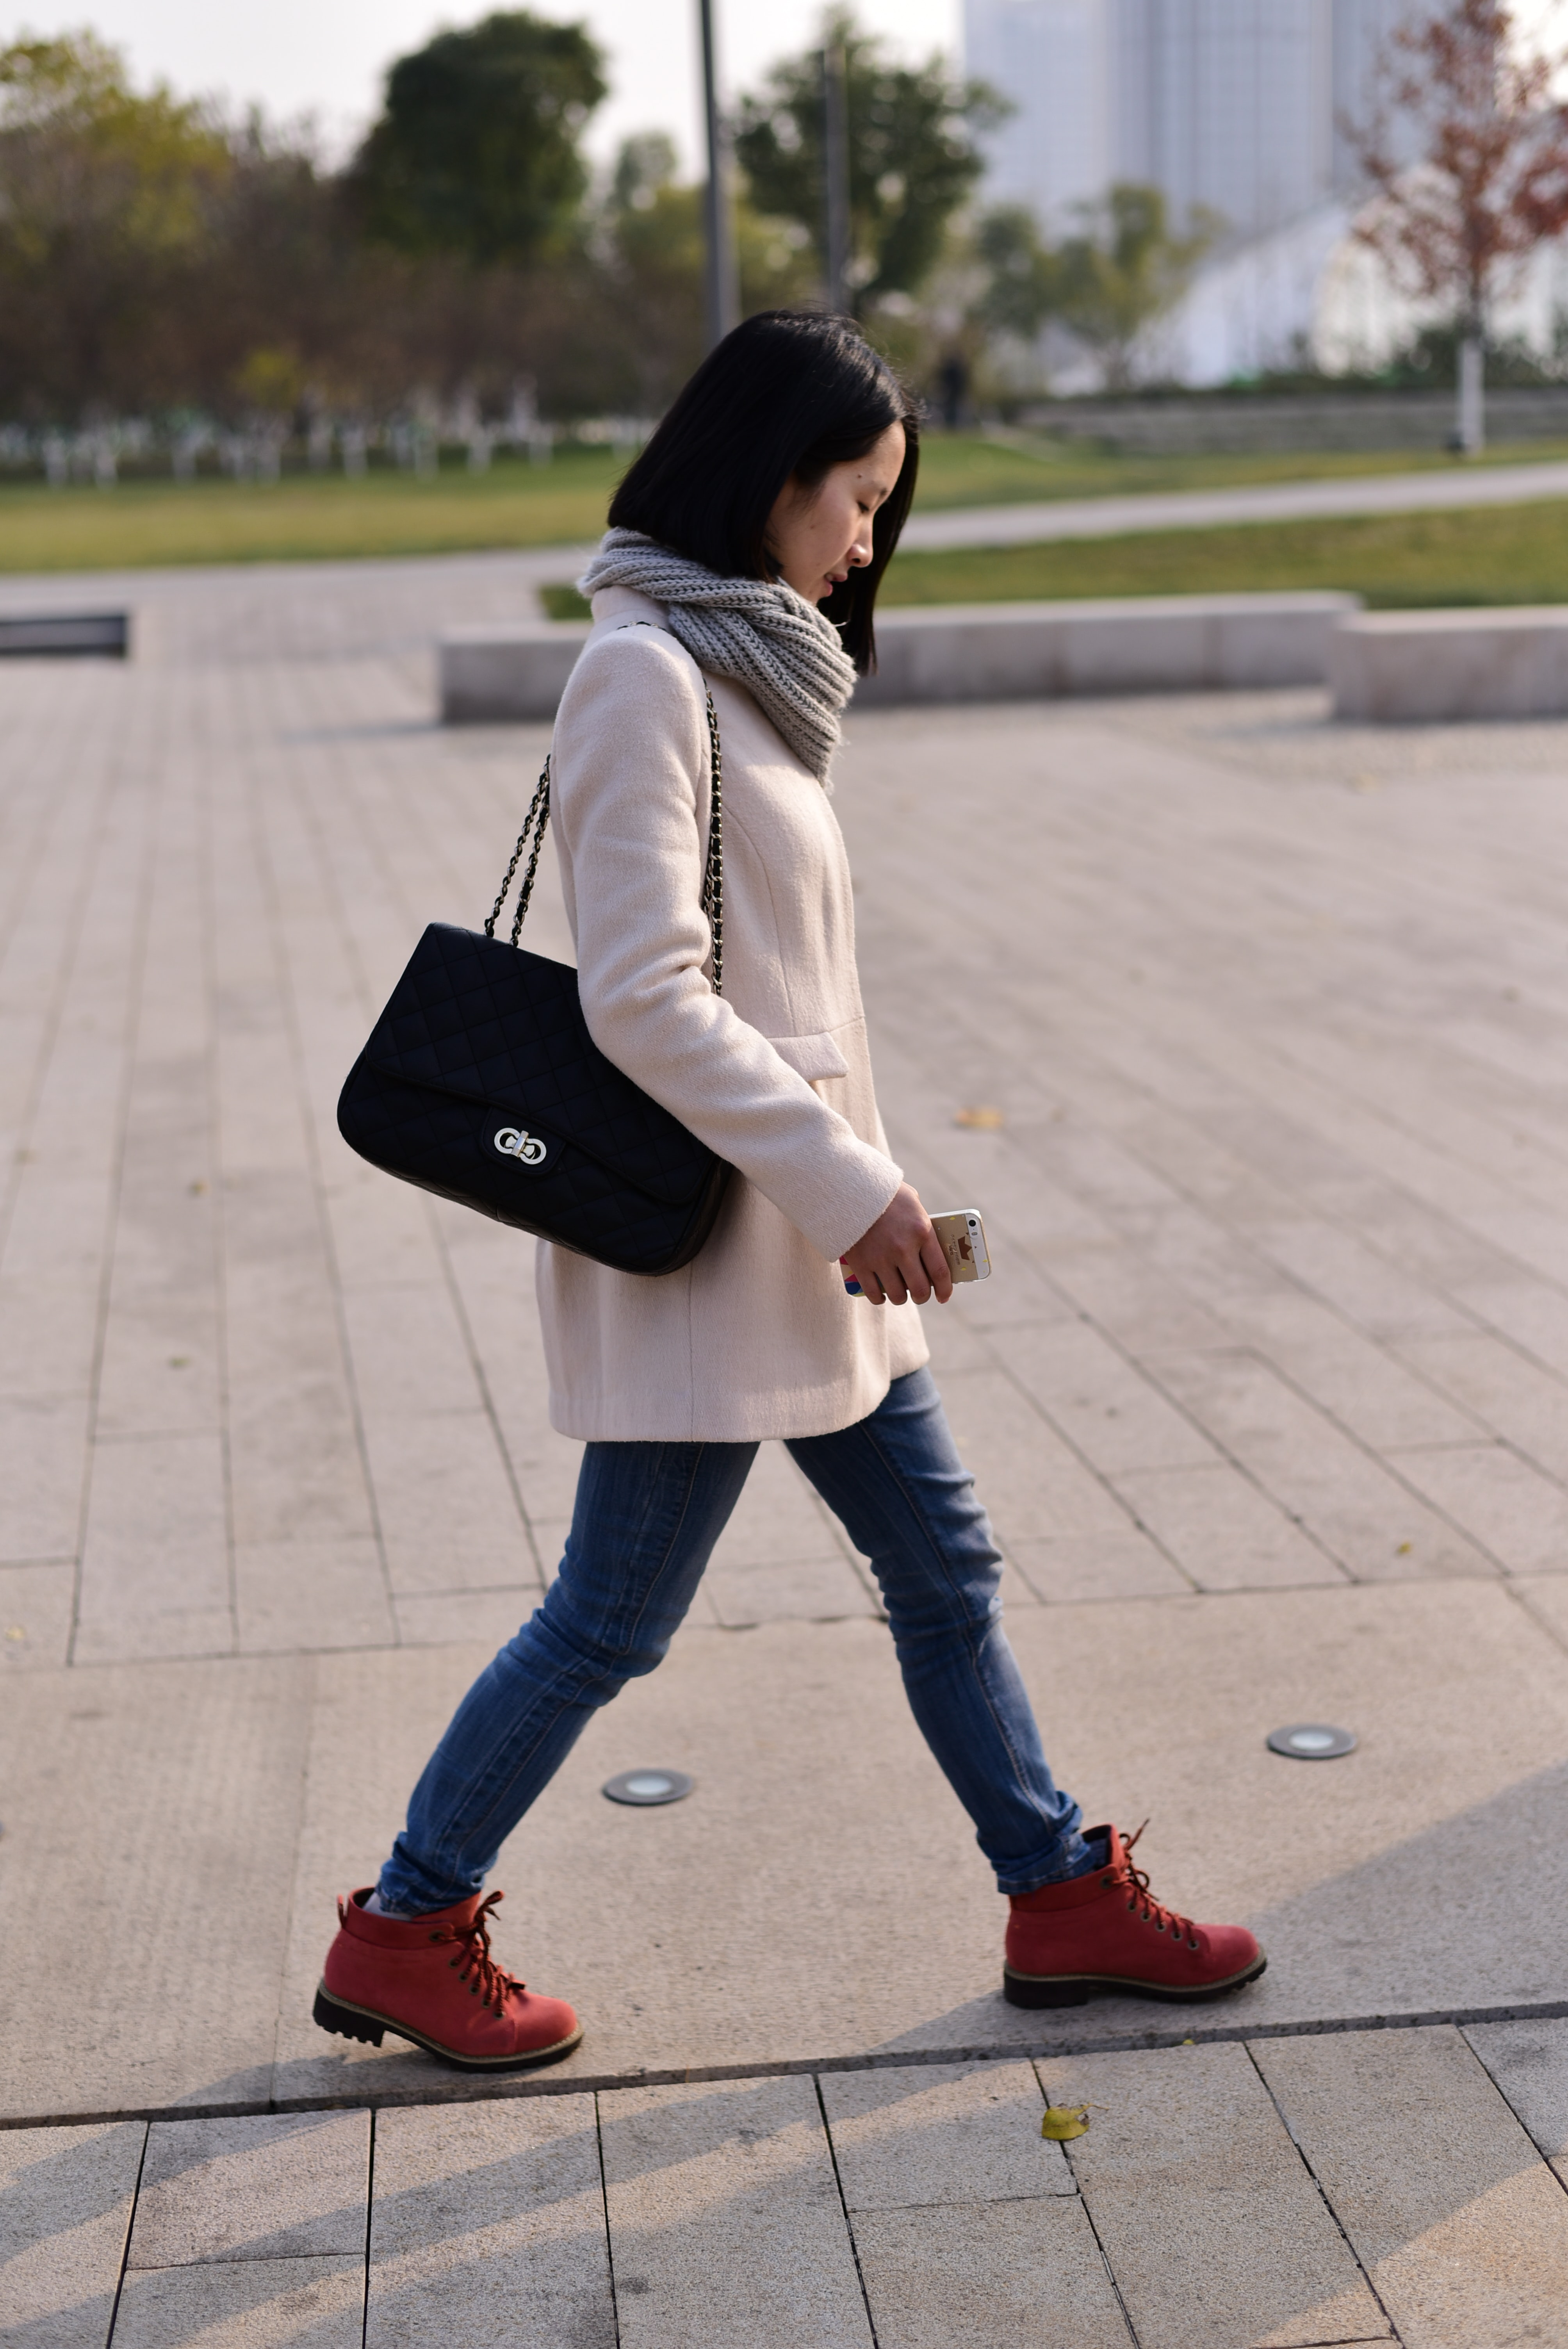 Woman in a knit scarf and sweater walking and carrying an iphone